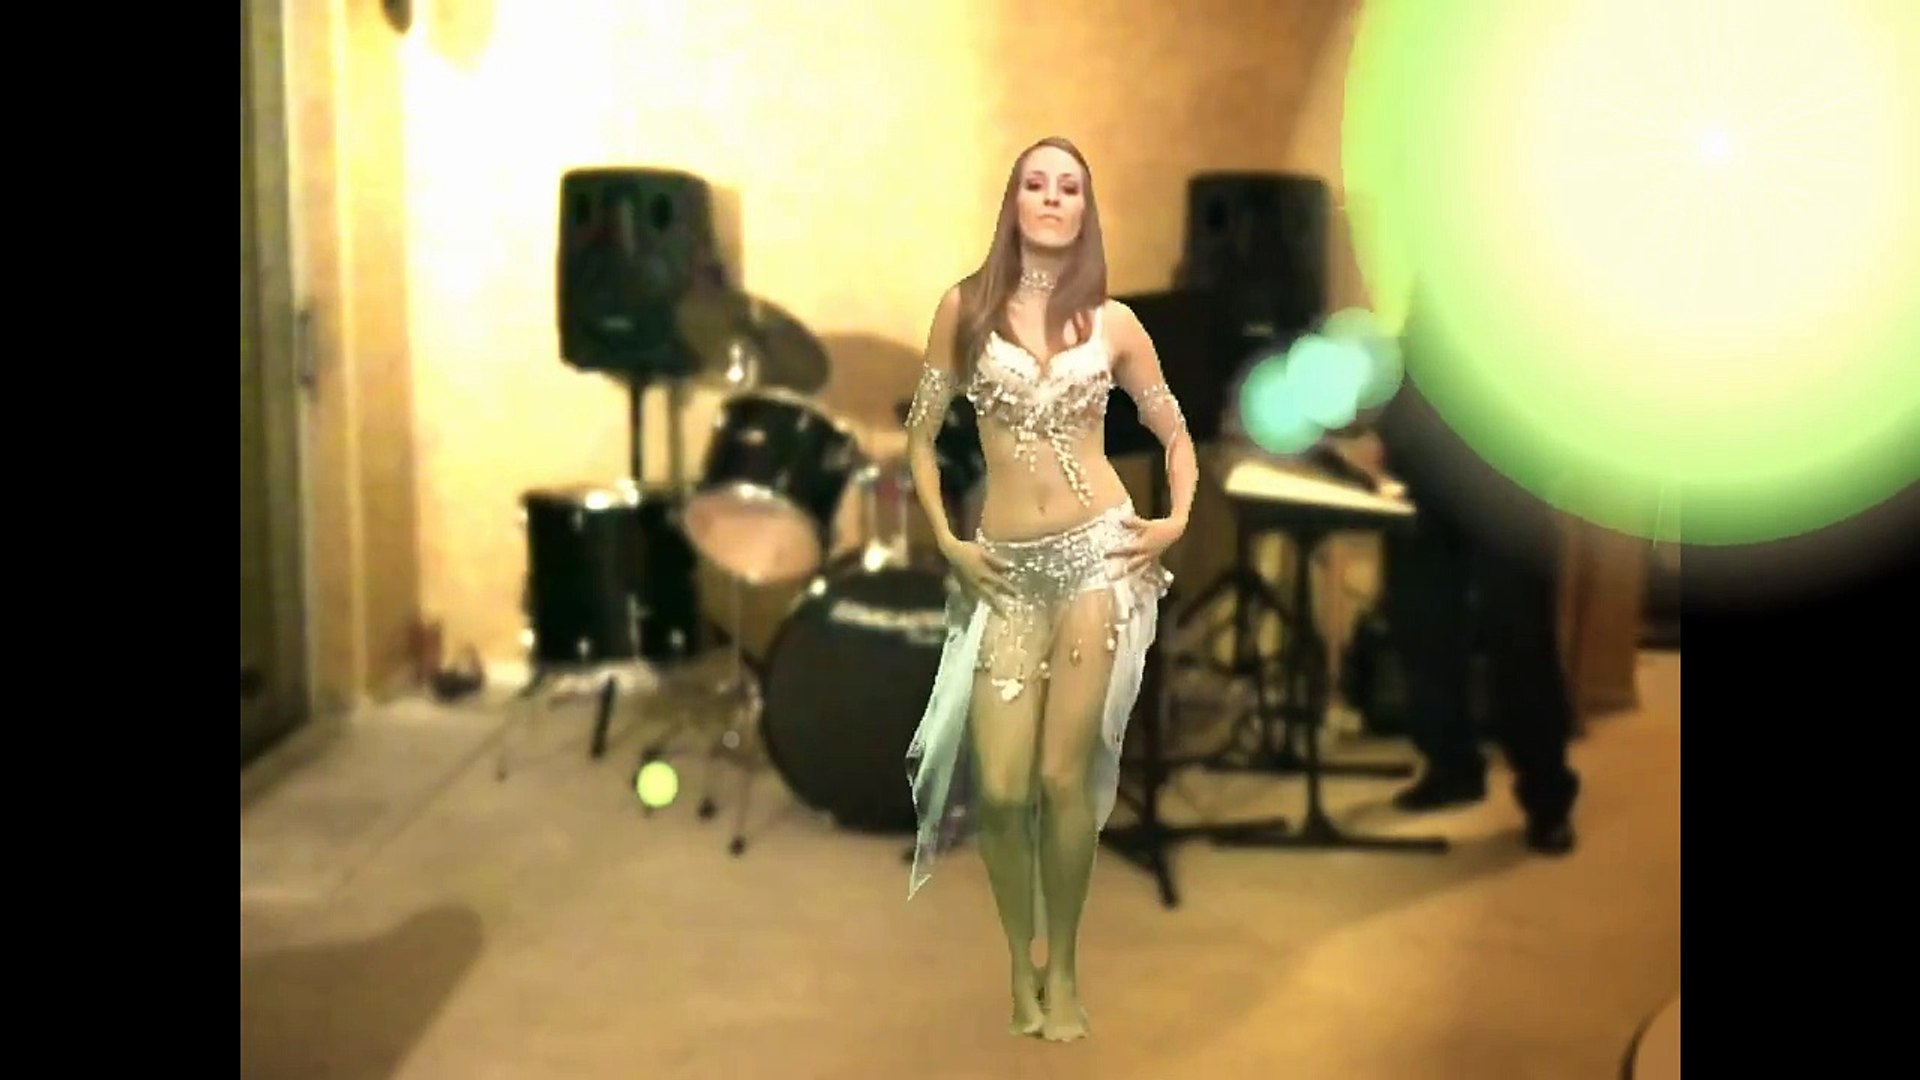 Sexy Fun with Green Screen .Belly Dance 2014 So Sexy